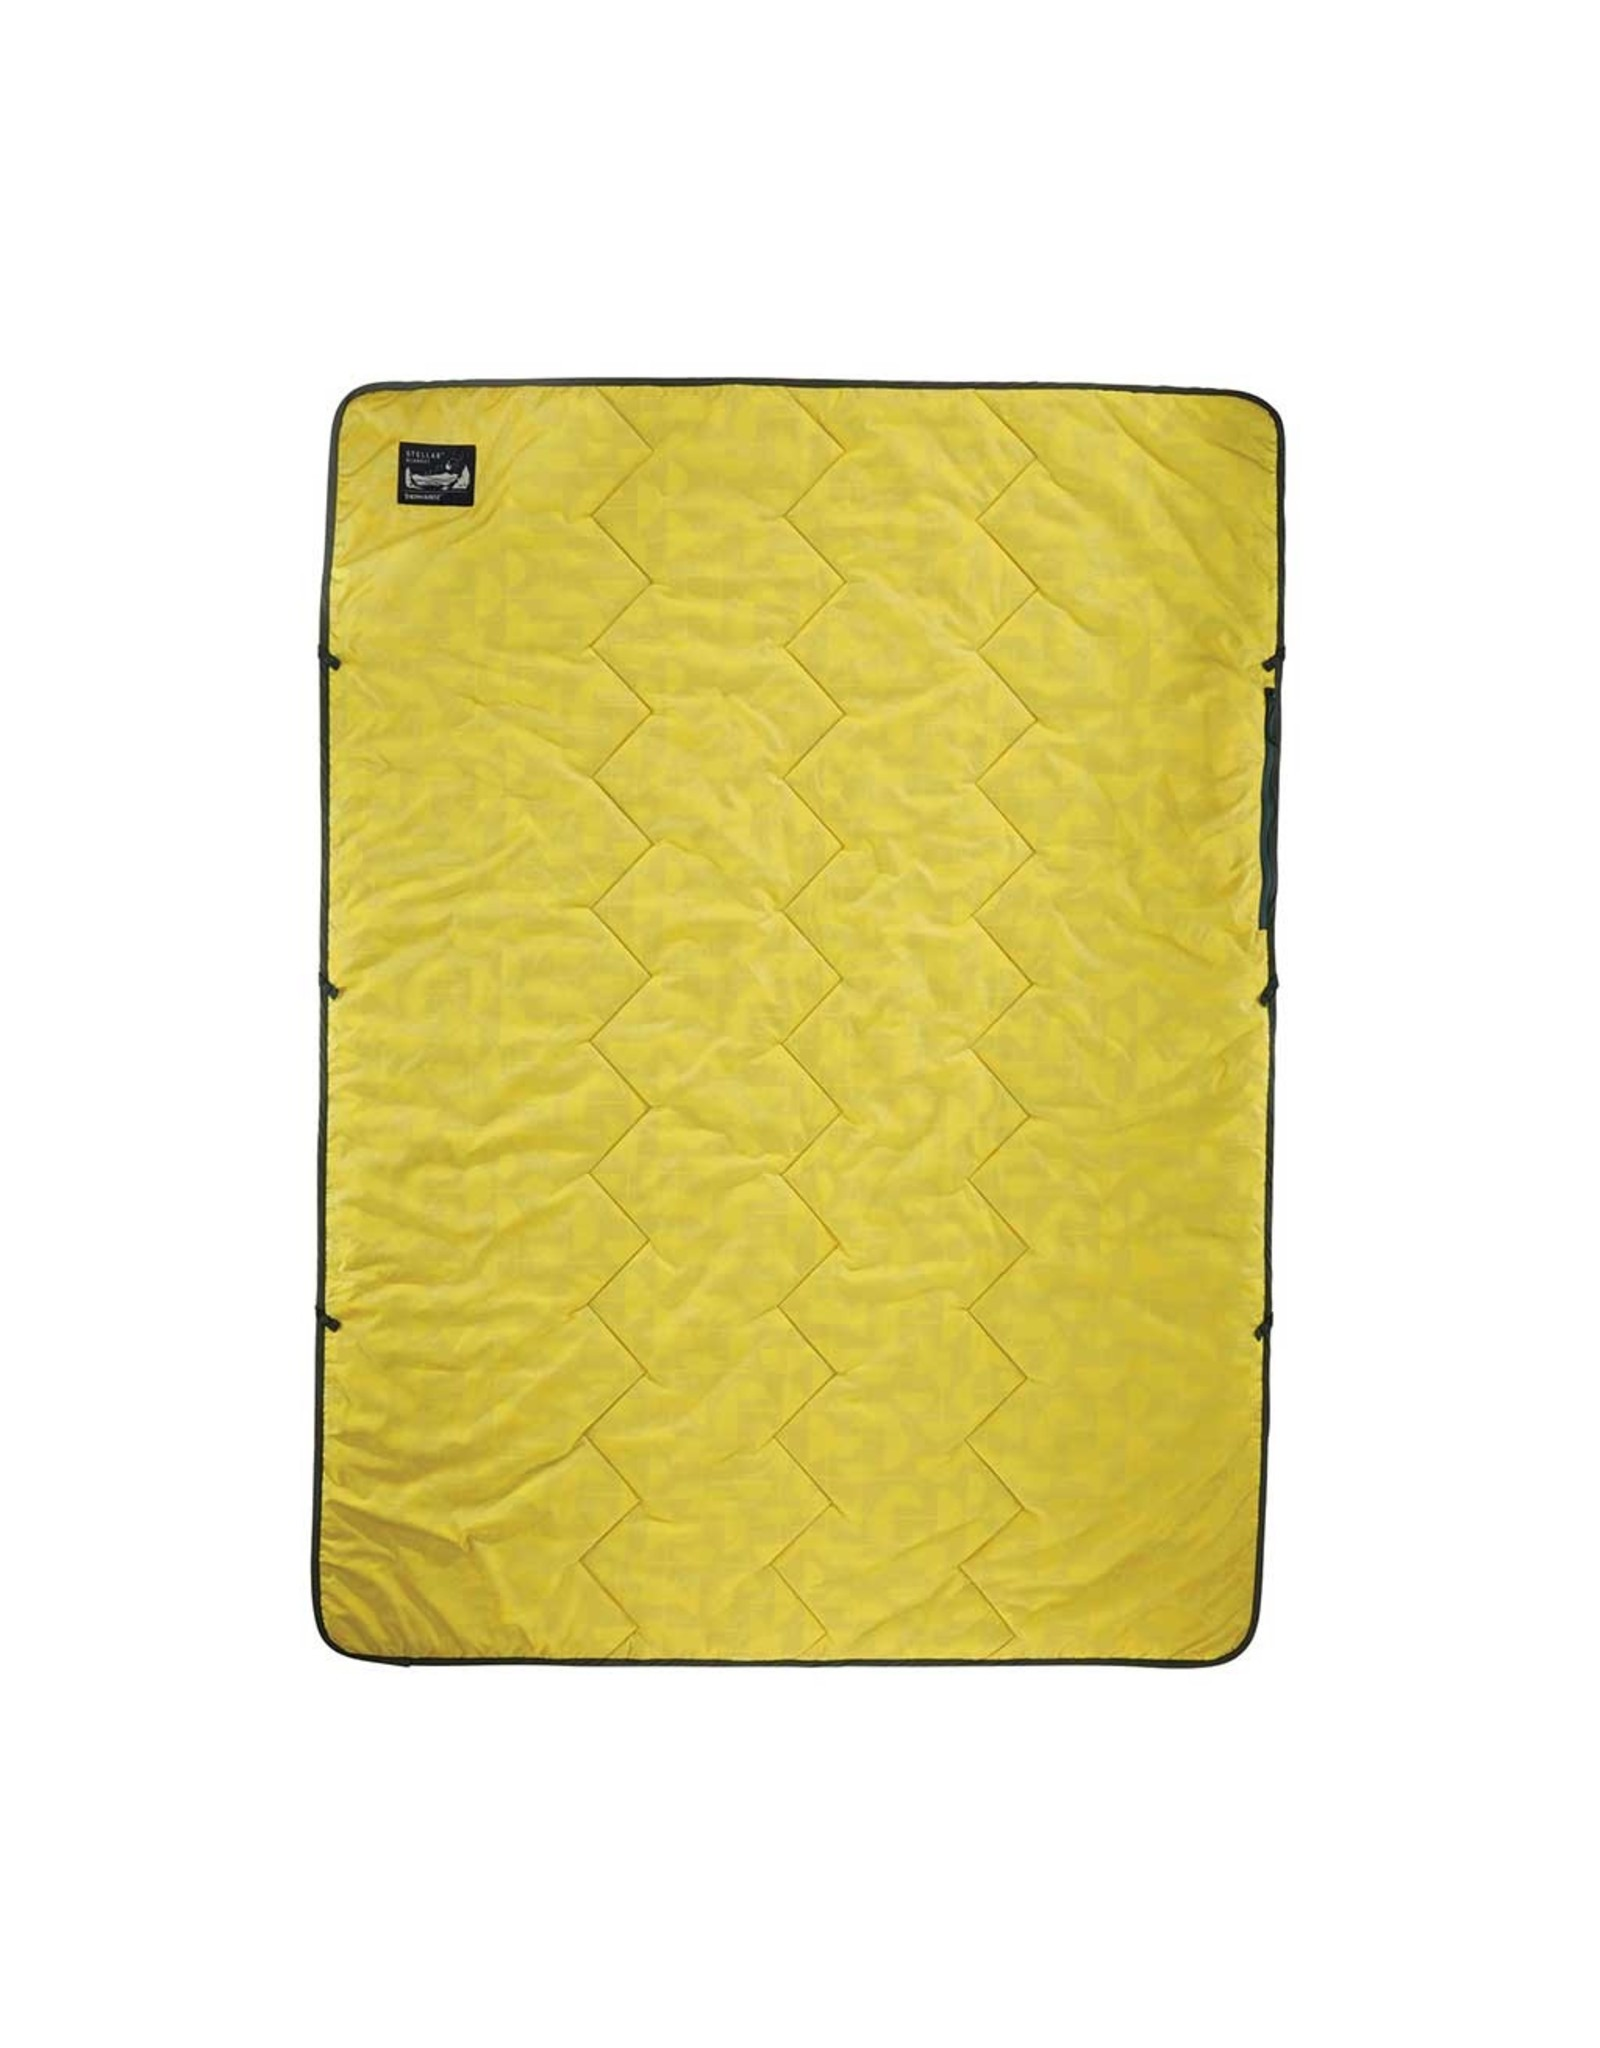 Therm-a-Rest Therm-a-Rest Stellar Blanket New Yellow